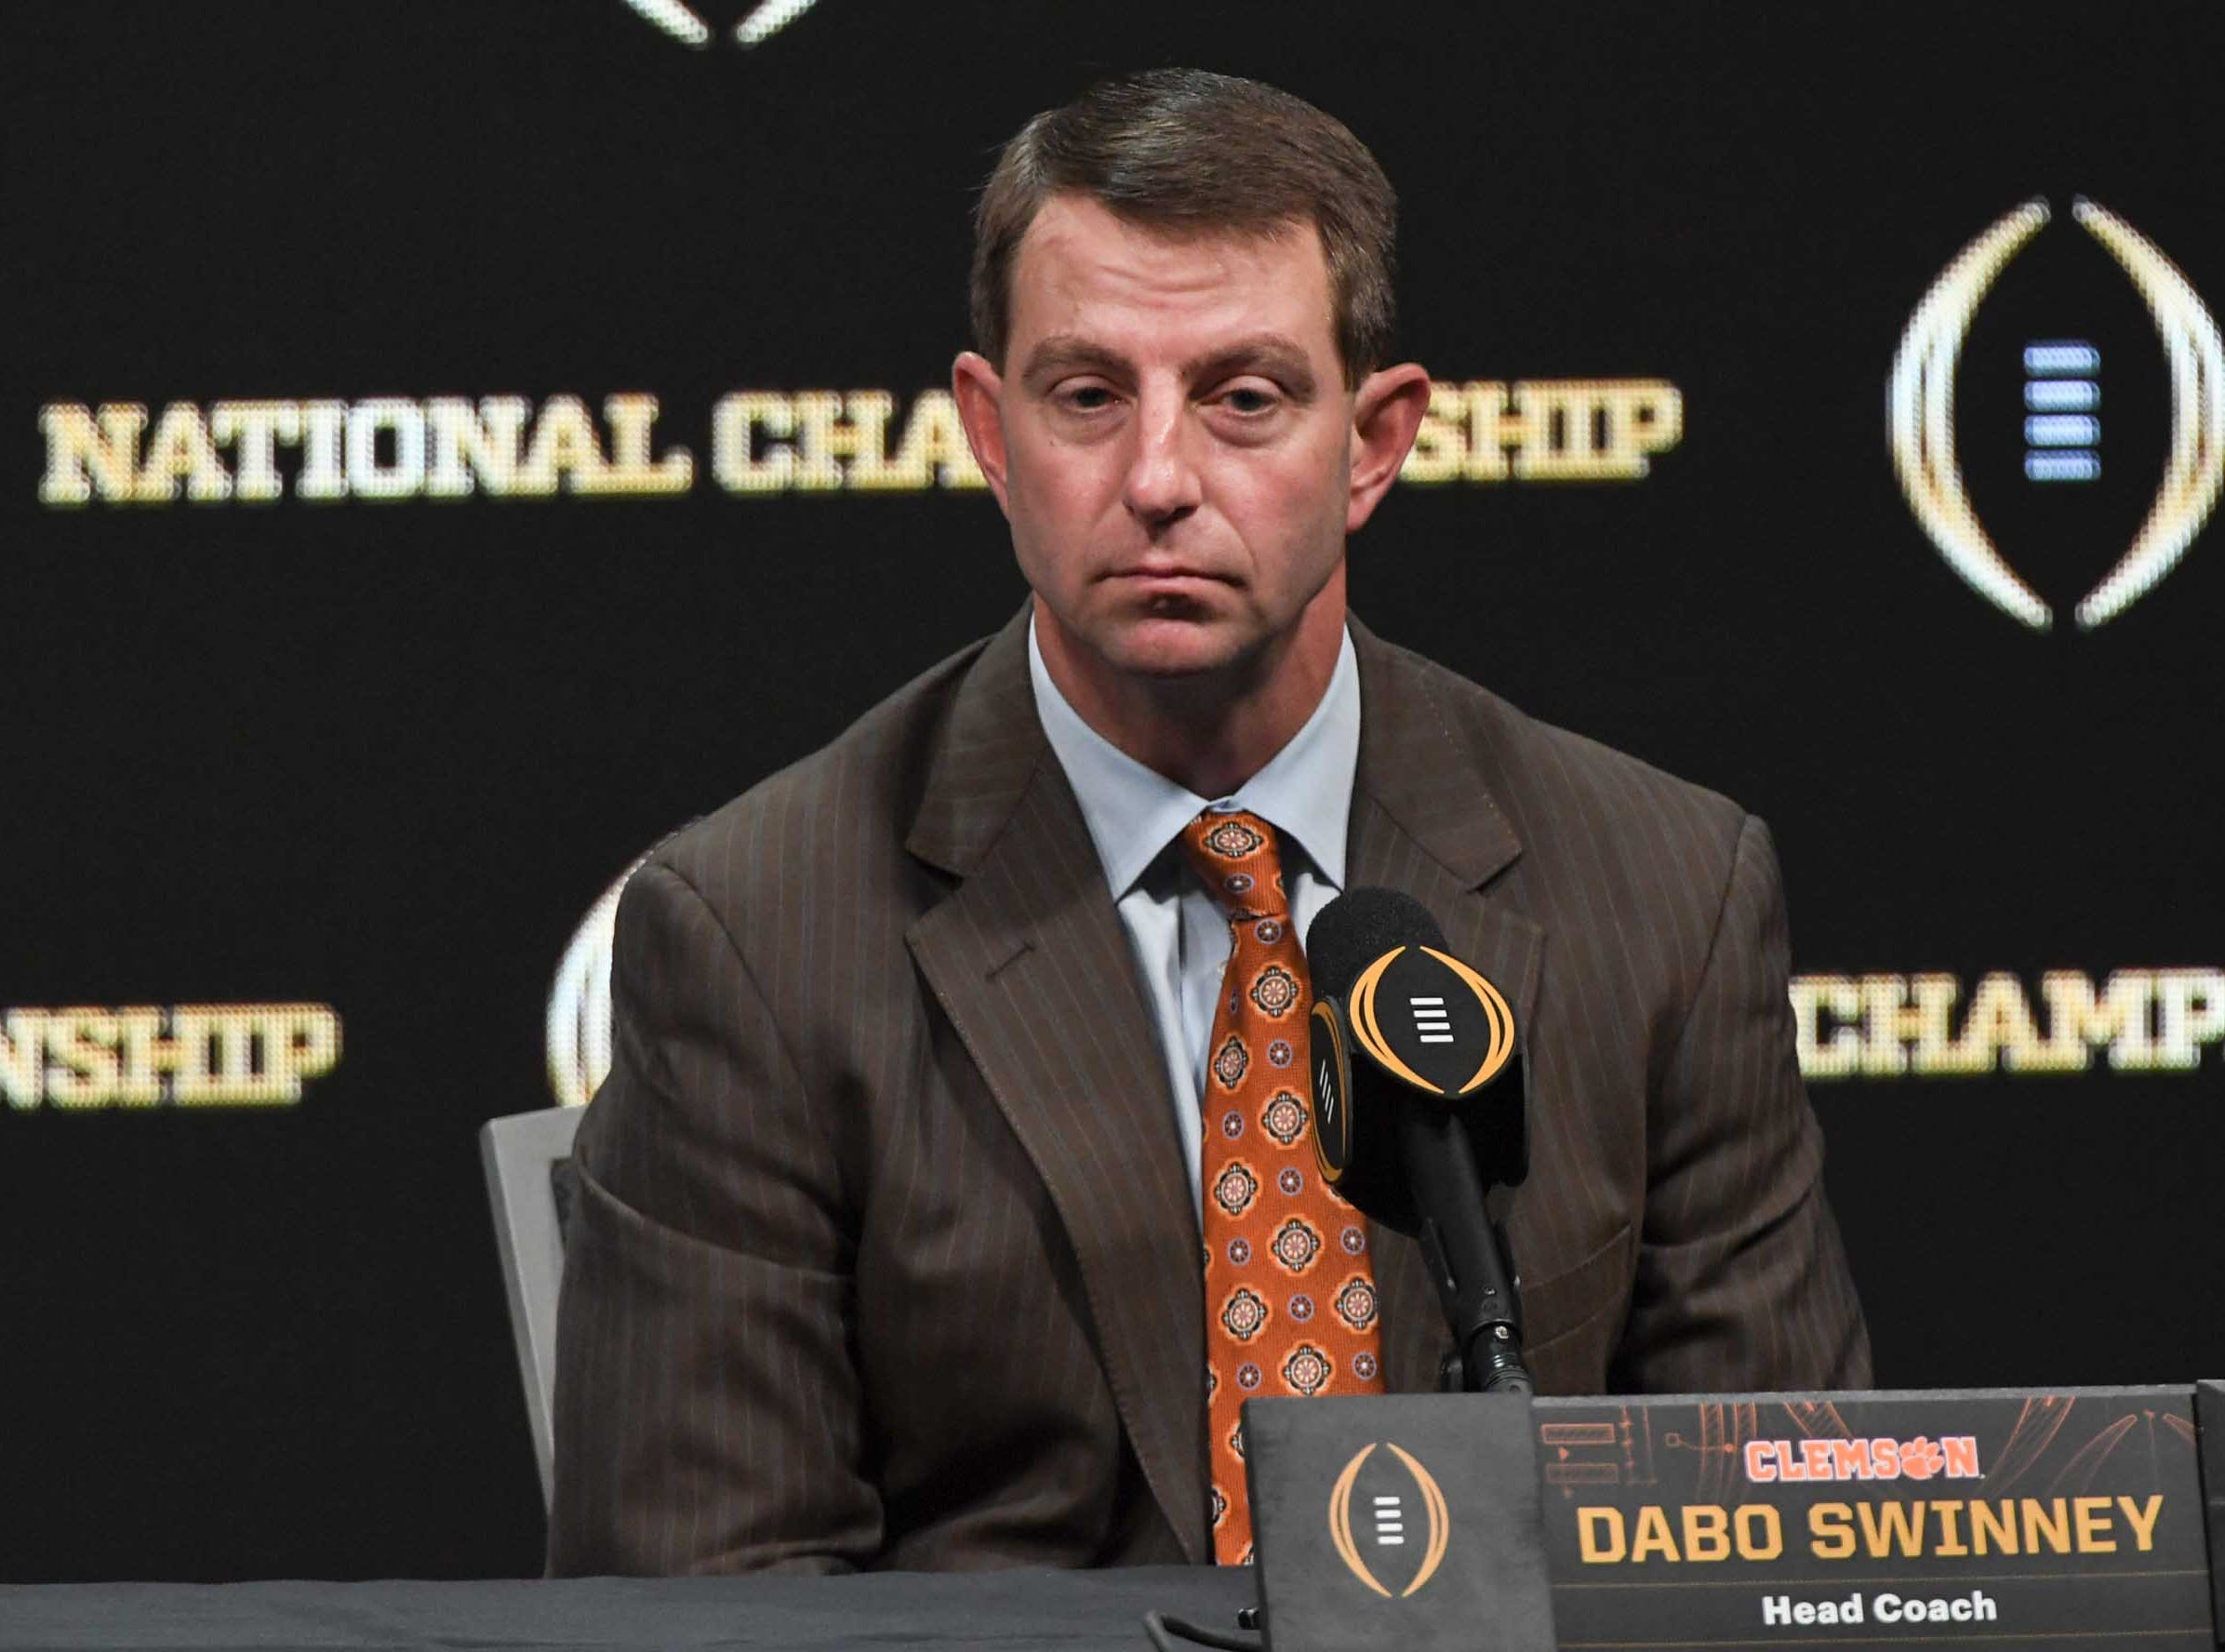 Clemson Head Coach Dabo Swinney during the College Football Playoff Championship coaches press conference in San Jose, California January 6, 2019.